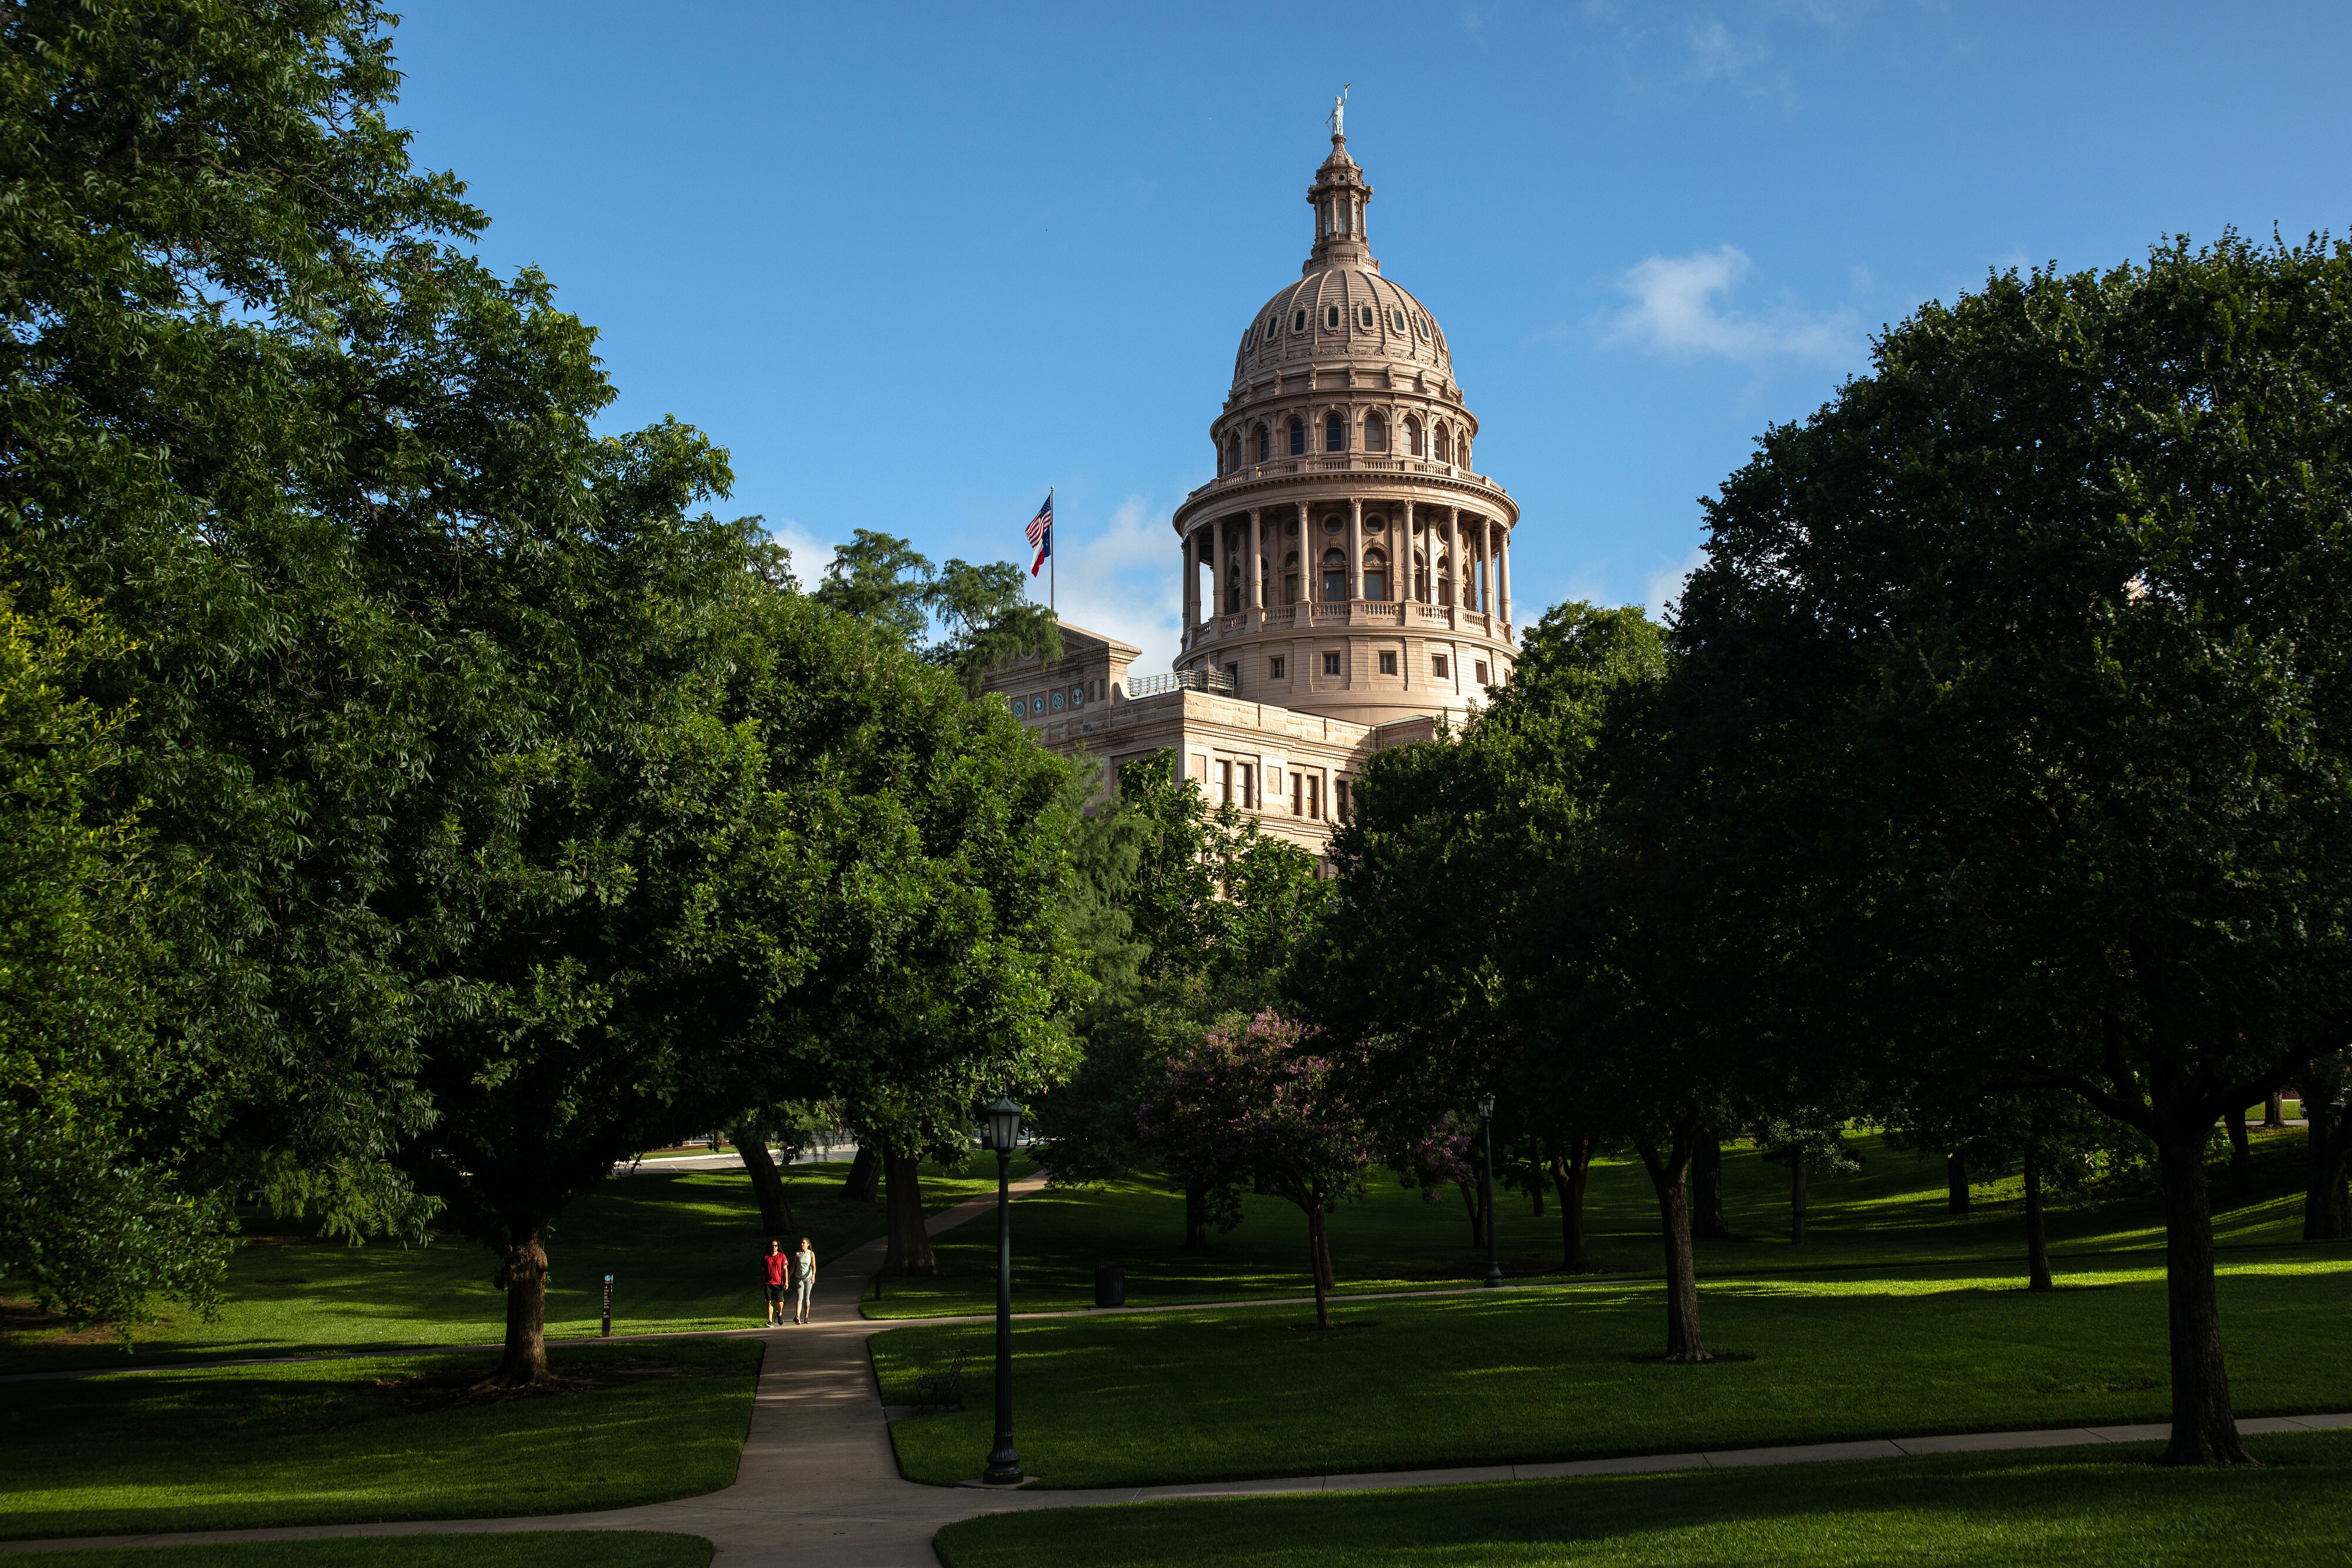 Confusion reigns in Texas as new law aims to restrict how race and history are taught in schools